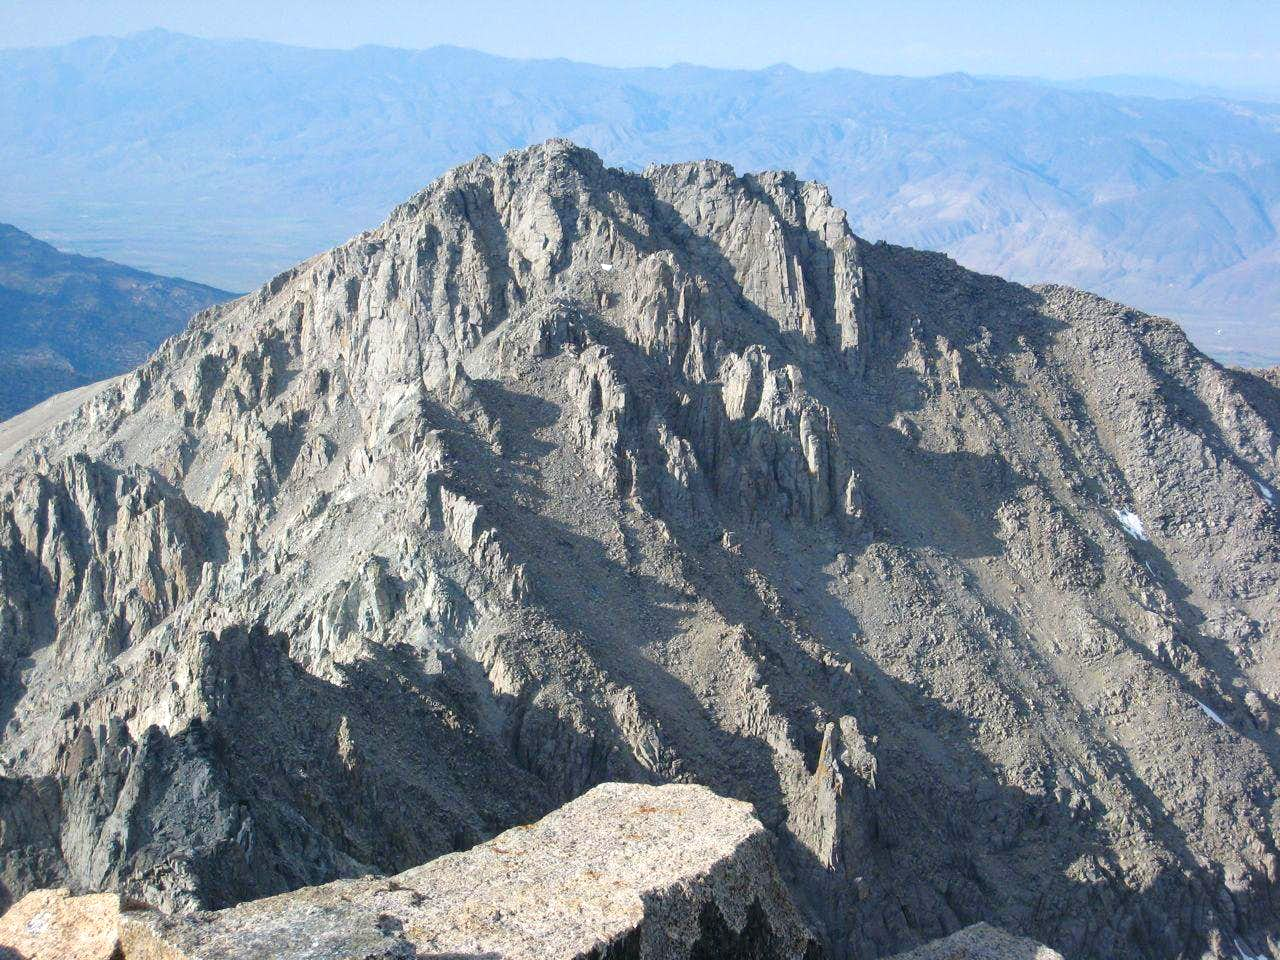 Peak 3994m (0.9 mi N of The Thumb)